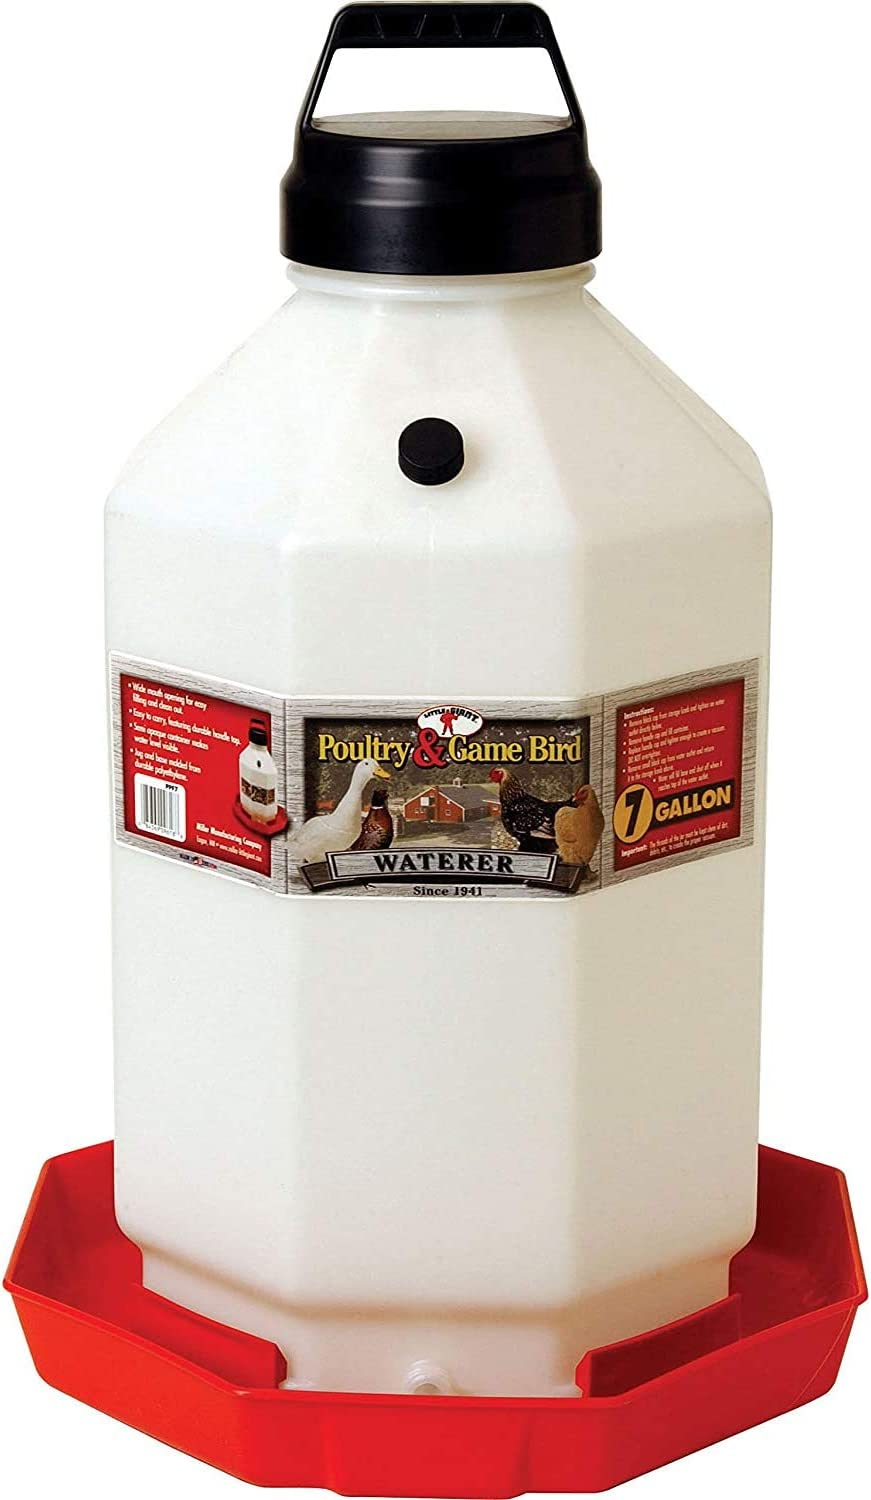 Little Giant PPF7 7 Gallon Capacity Automatic Chicken Poultry Waterer 2 Pack